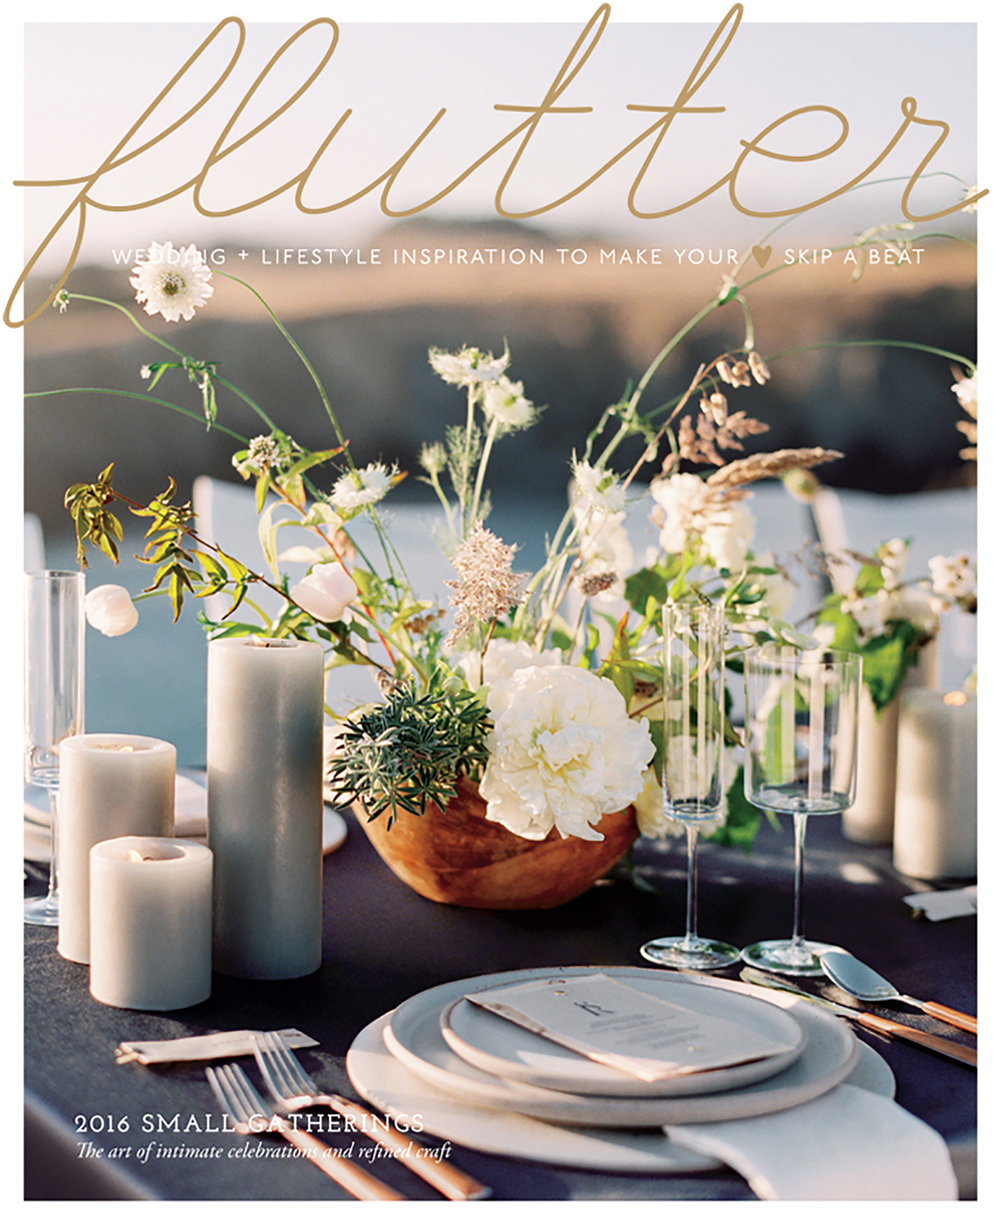 Flutter Magazine Issue 11 cover, featuring Chris & Andrew's St. Helena wedding, photographed by Sylvie Gil